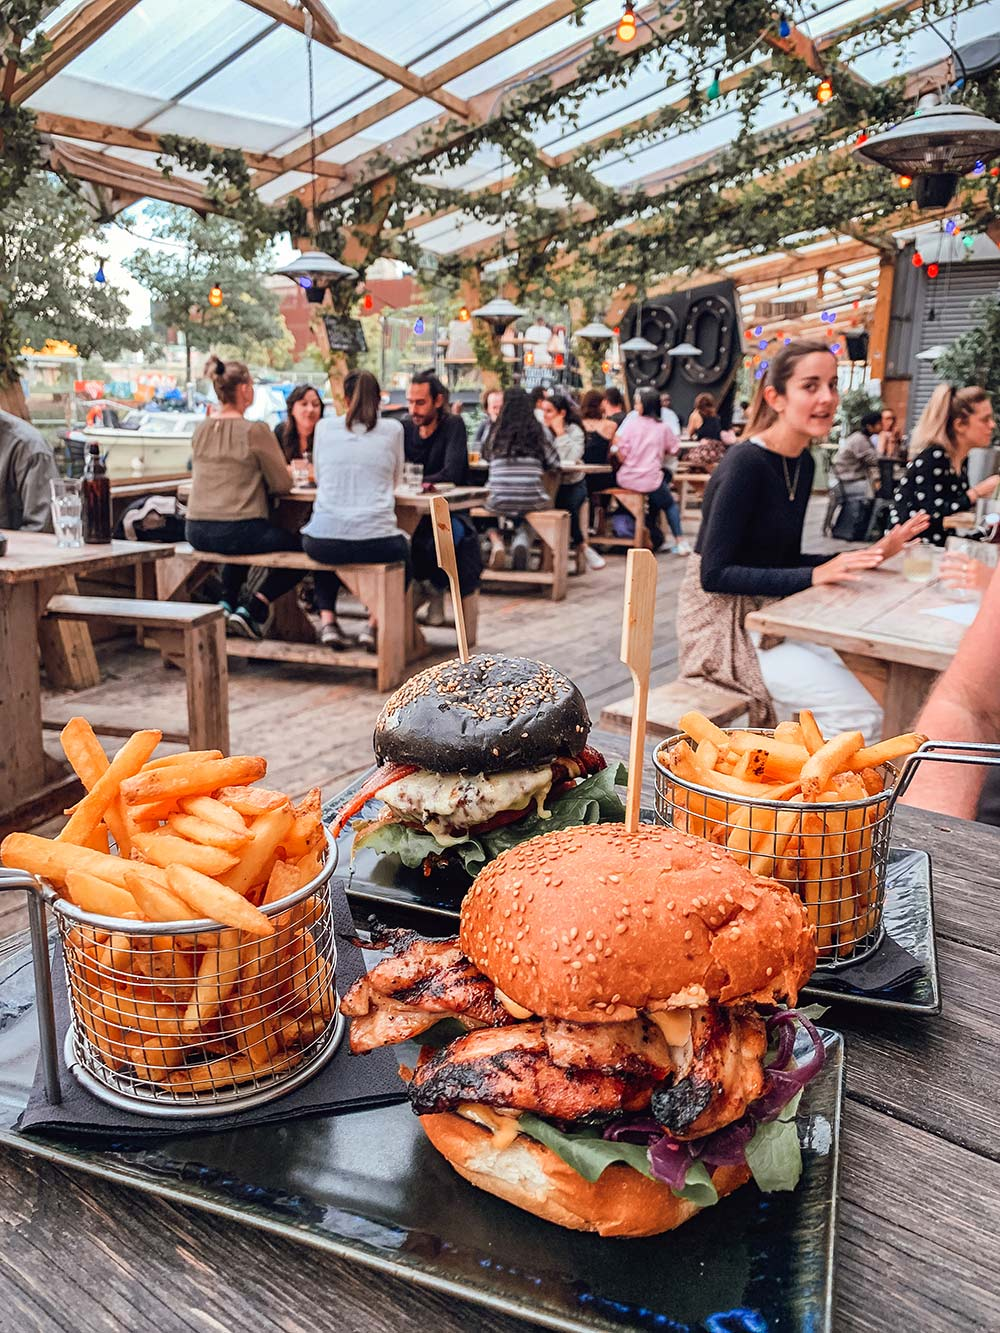 Number 90 Bar and Restaurant burgers Hackney Wick. Copyright CK Travels